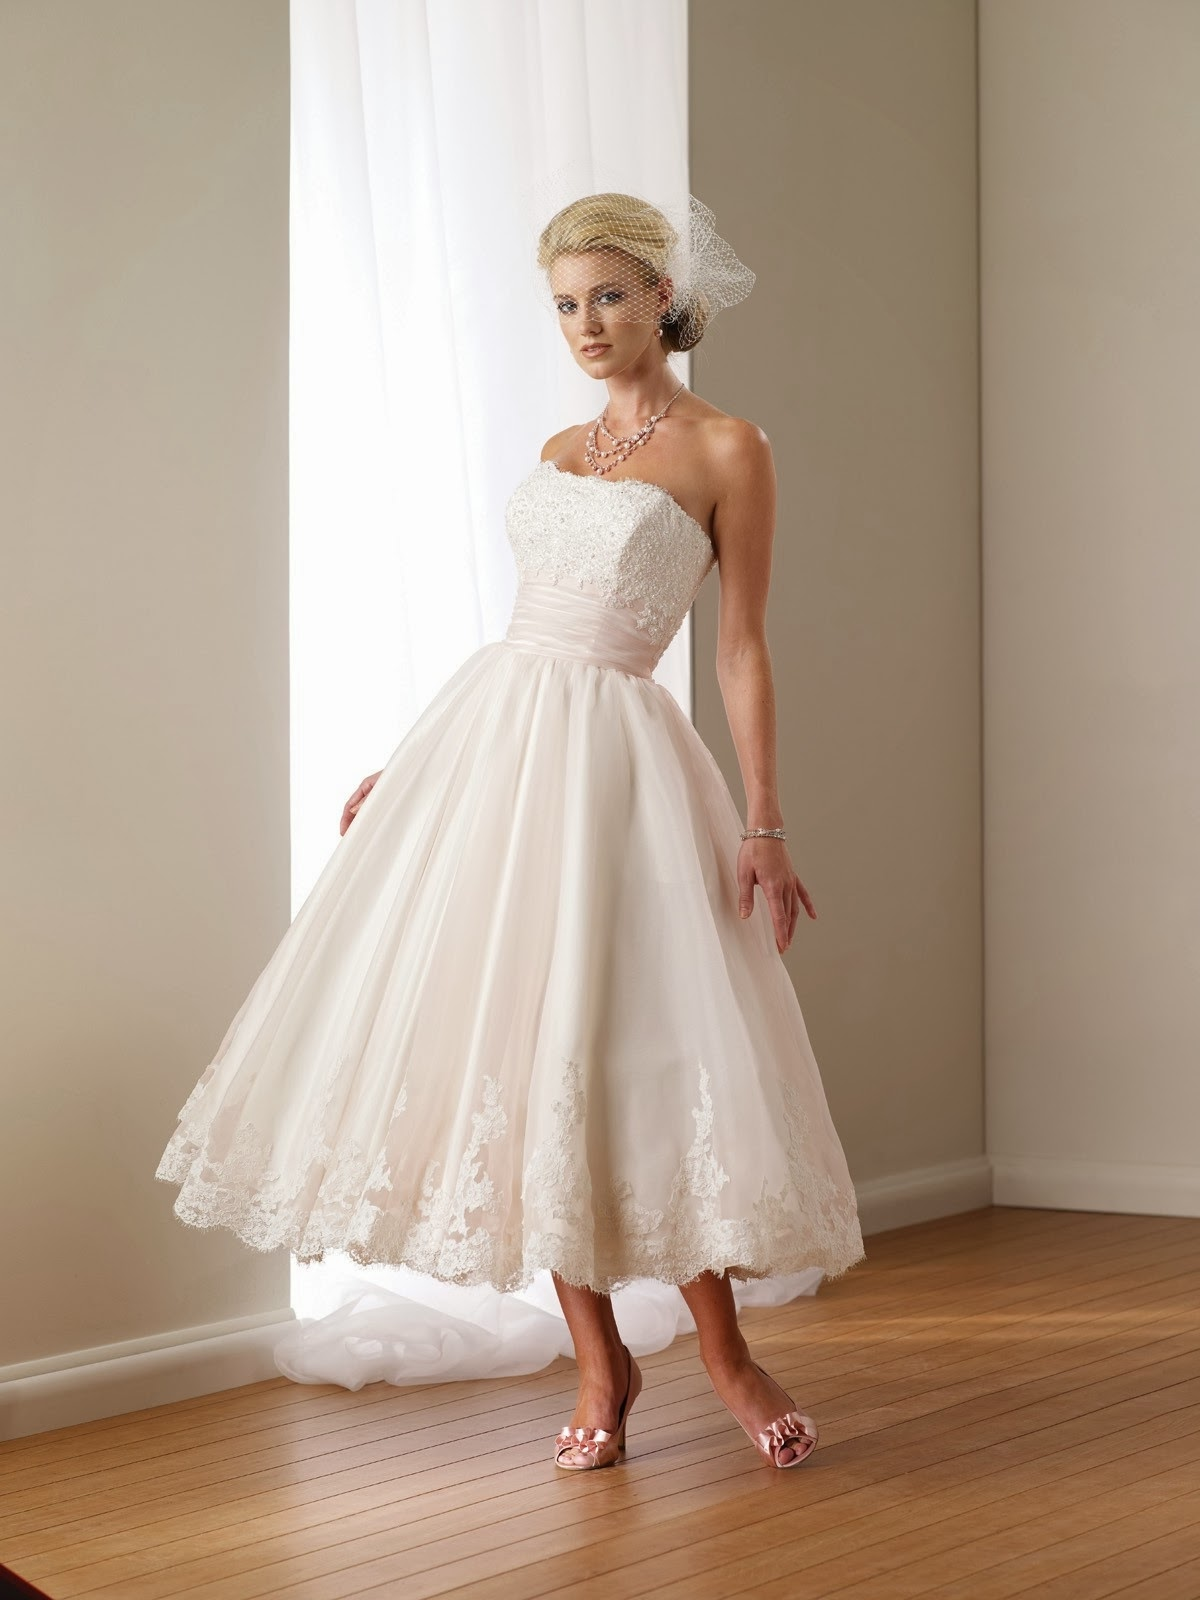 What Brides to Be Should Know About Choosing a Stylish Summer Wedding Dress